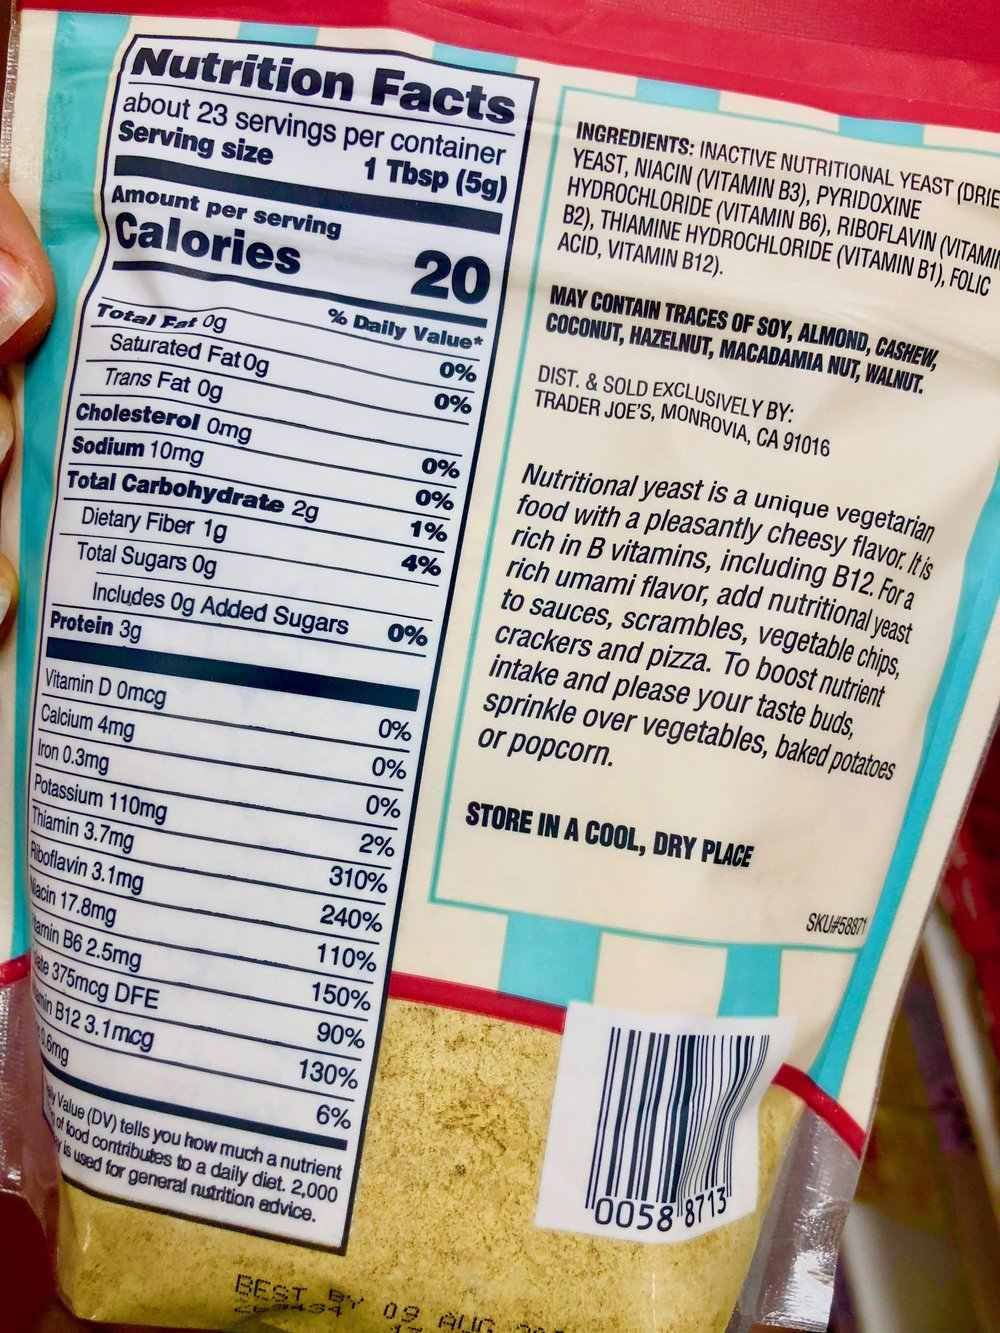 Nutritional Yeast nutriton information and ingredient list.